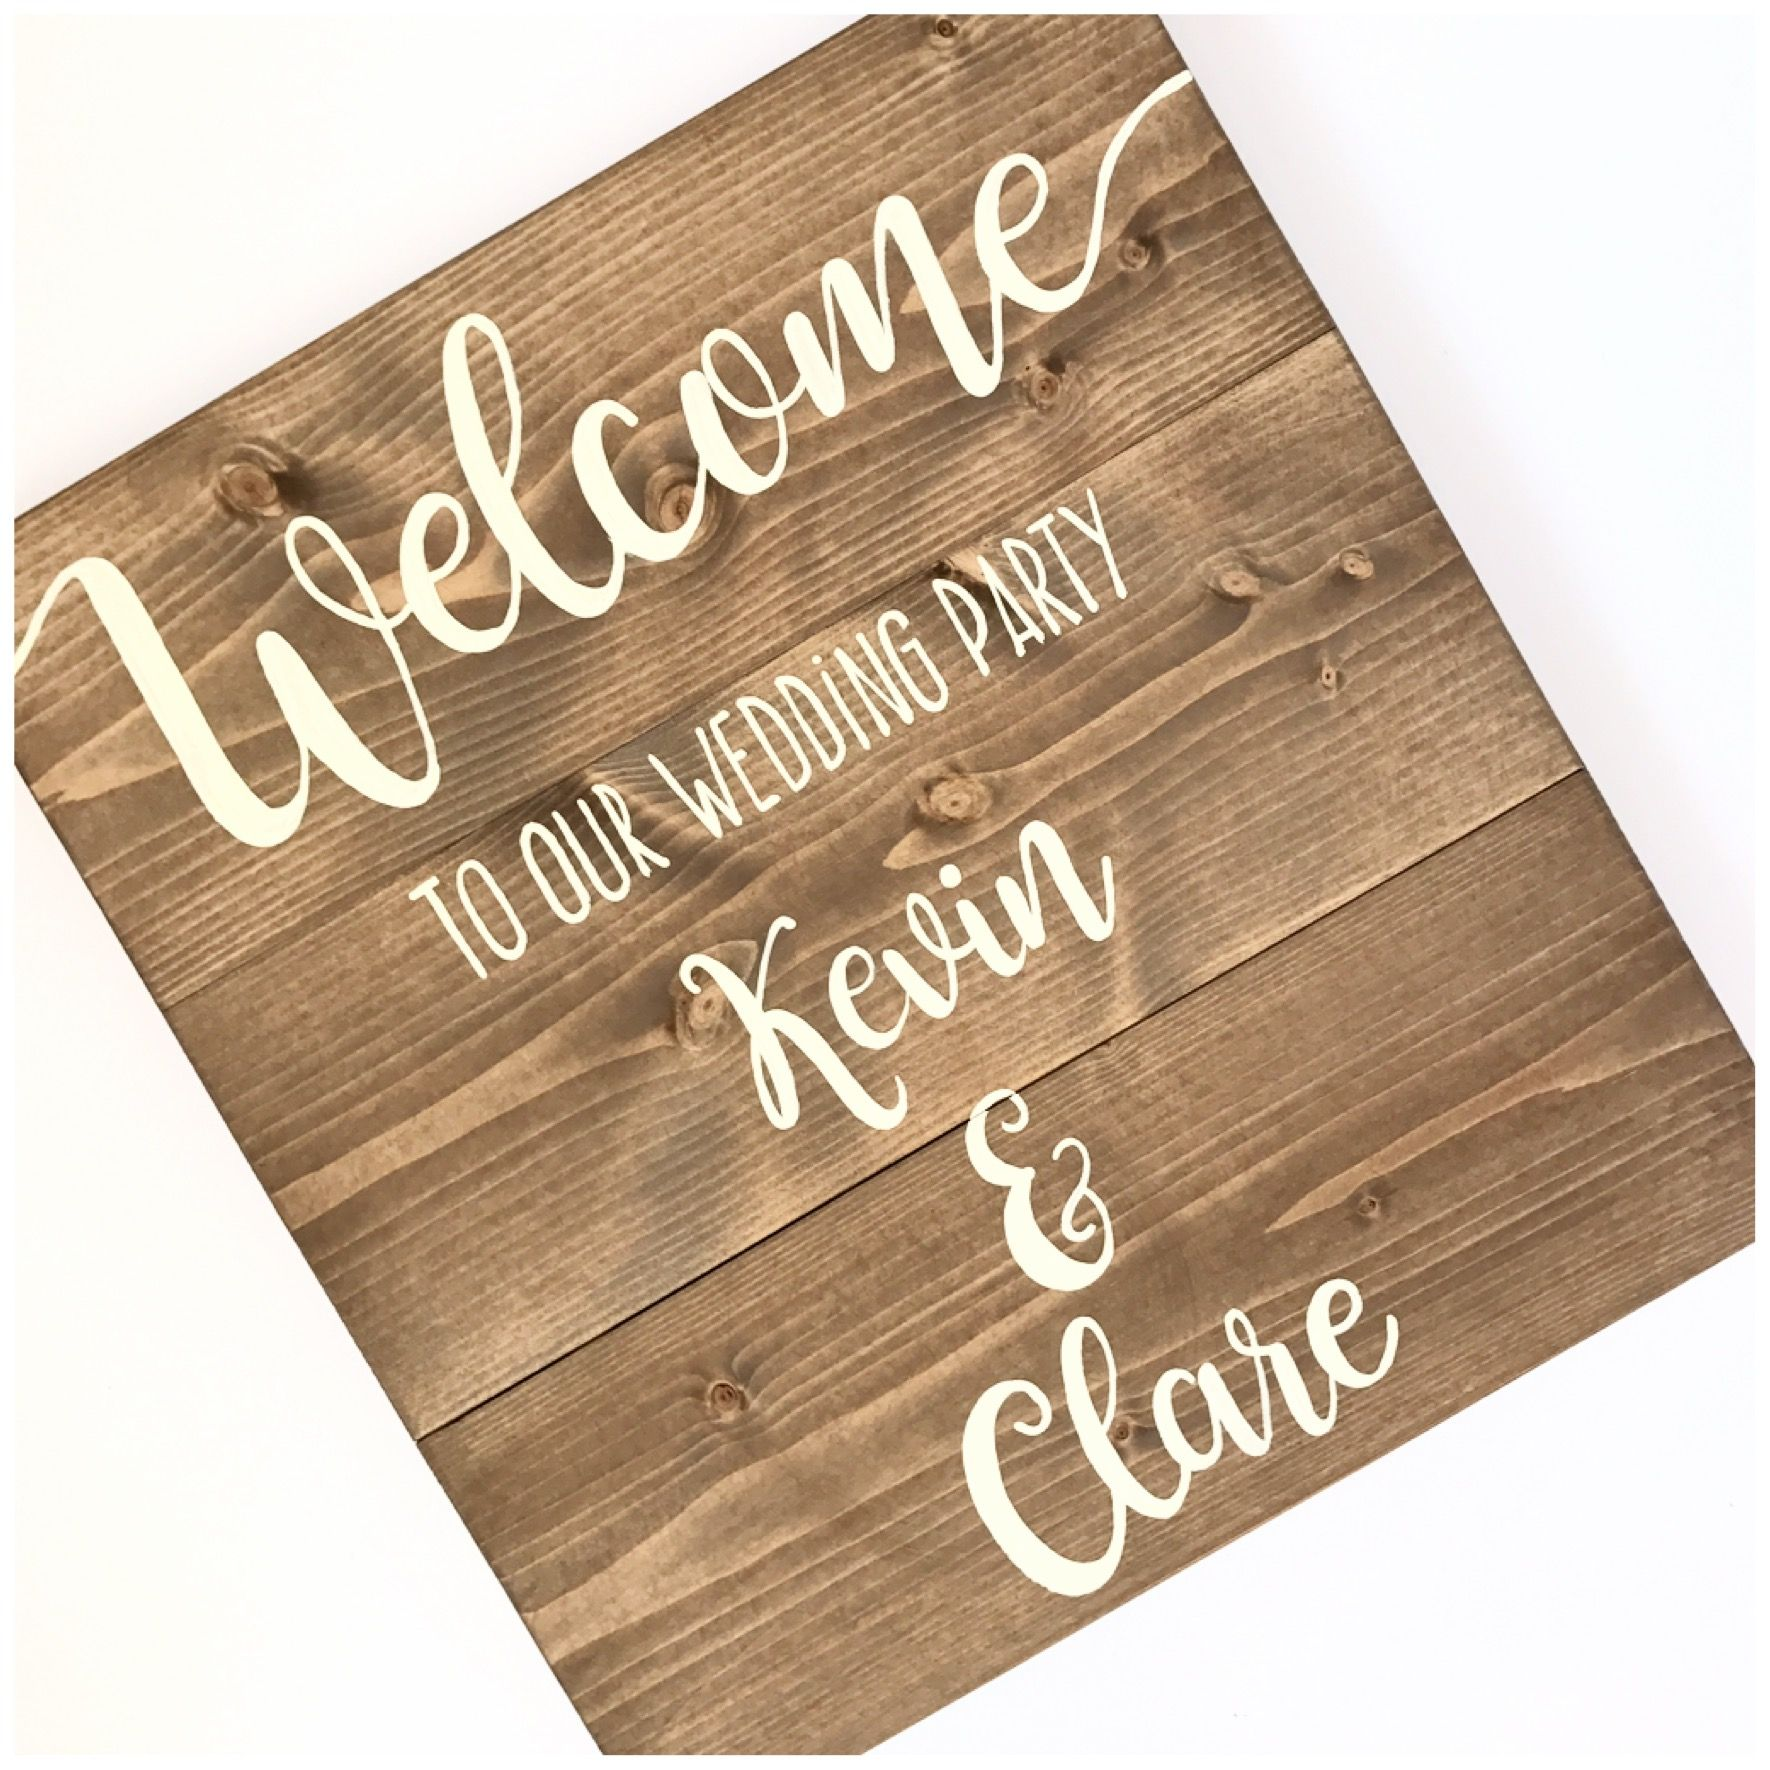 Welcome your guests signs of the times pinterest wedding shop online with the old potting shed based in sudbury we ship wedding centrepieces guest books and more throughout the uk junglespirit Image collections